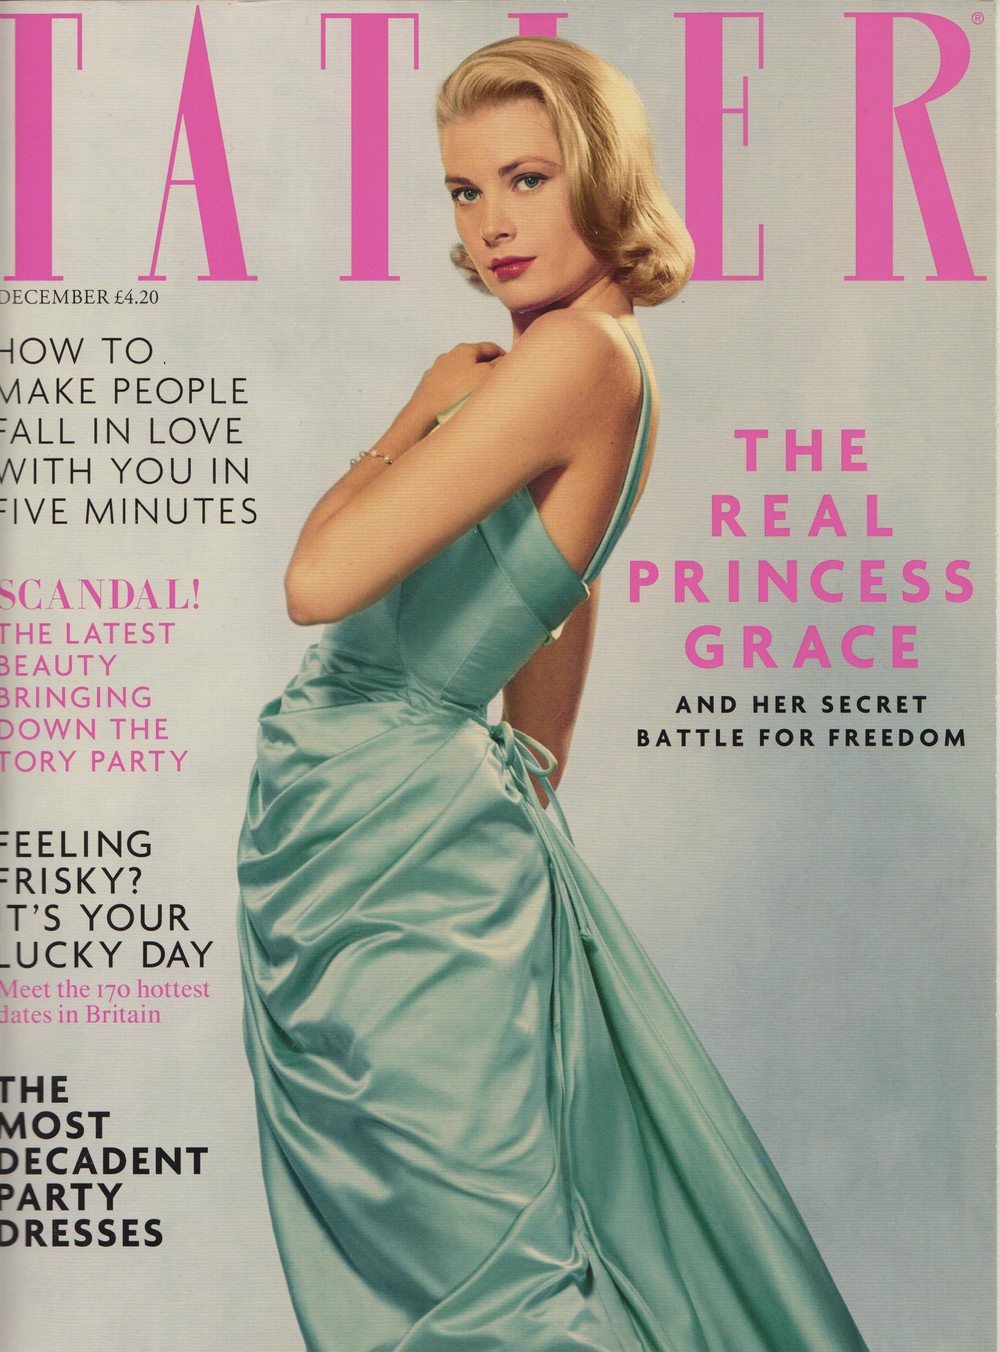 Tatler Cover - December 2013